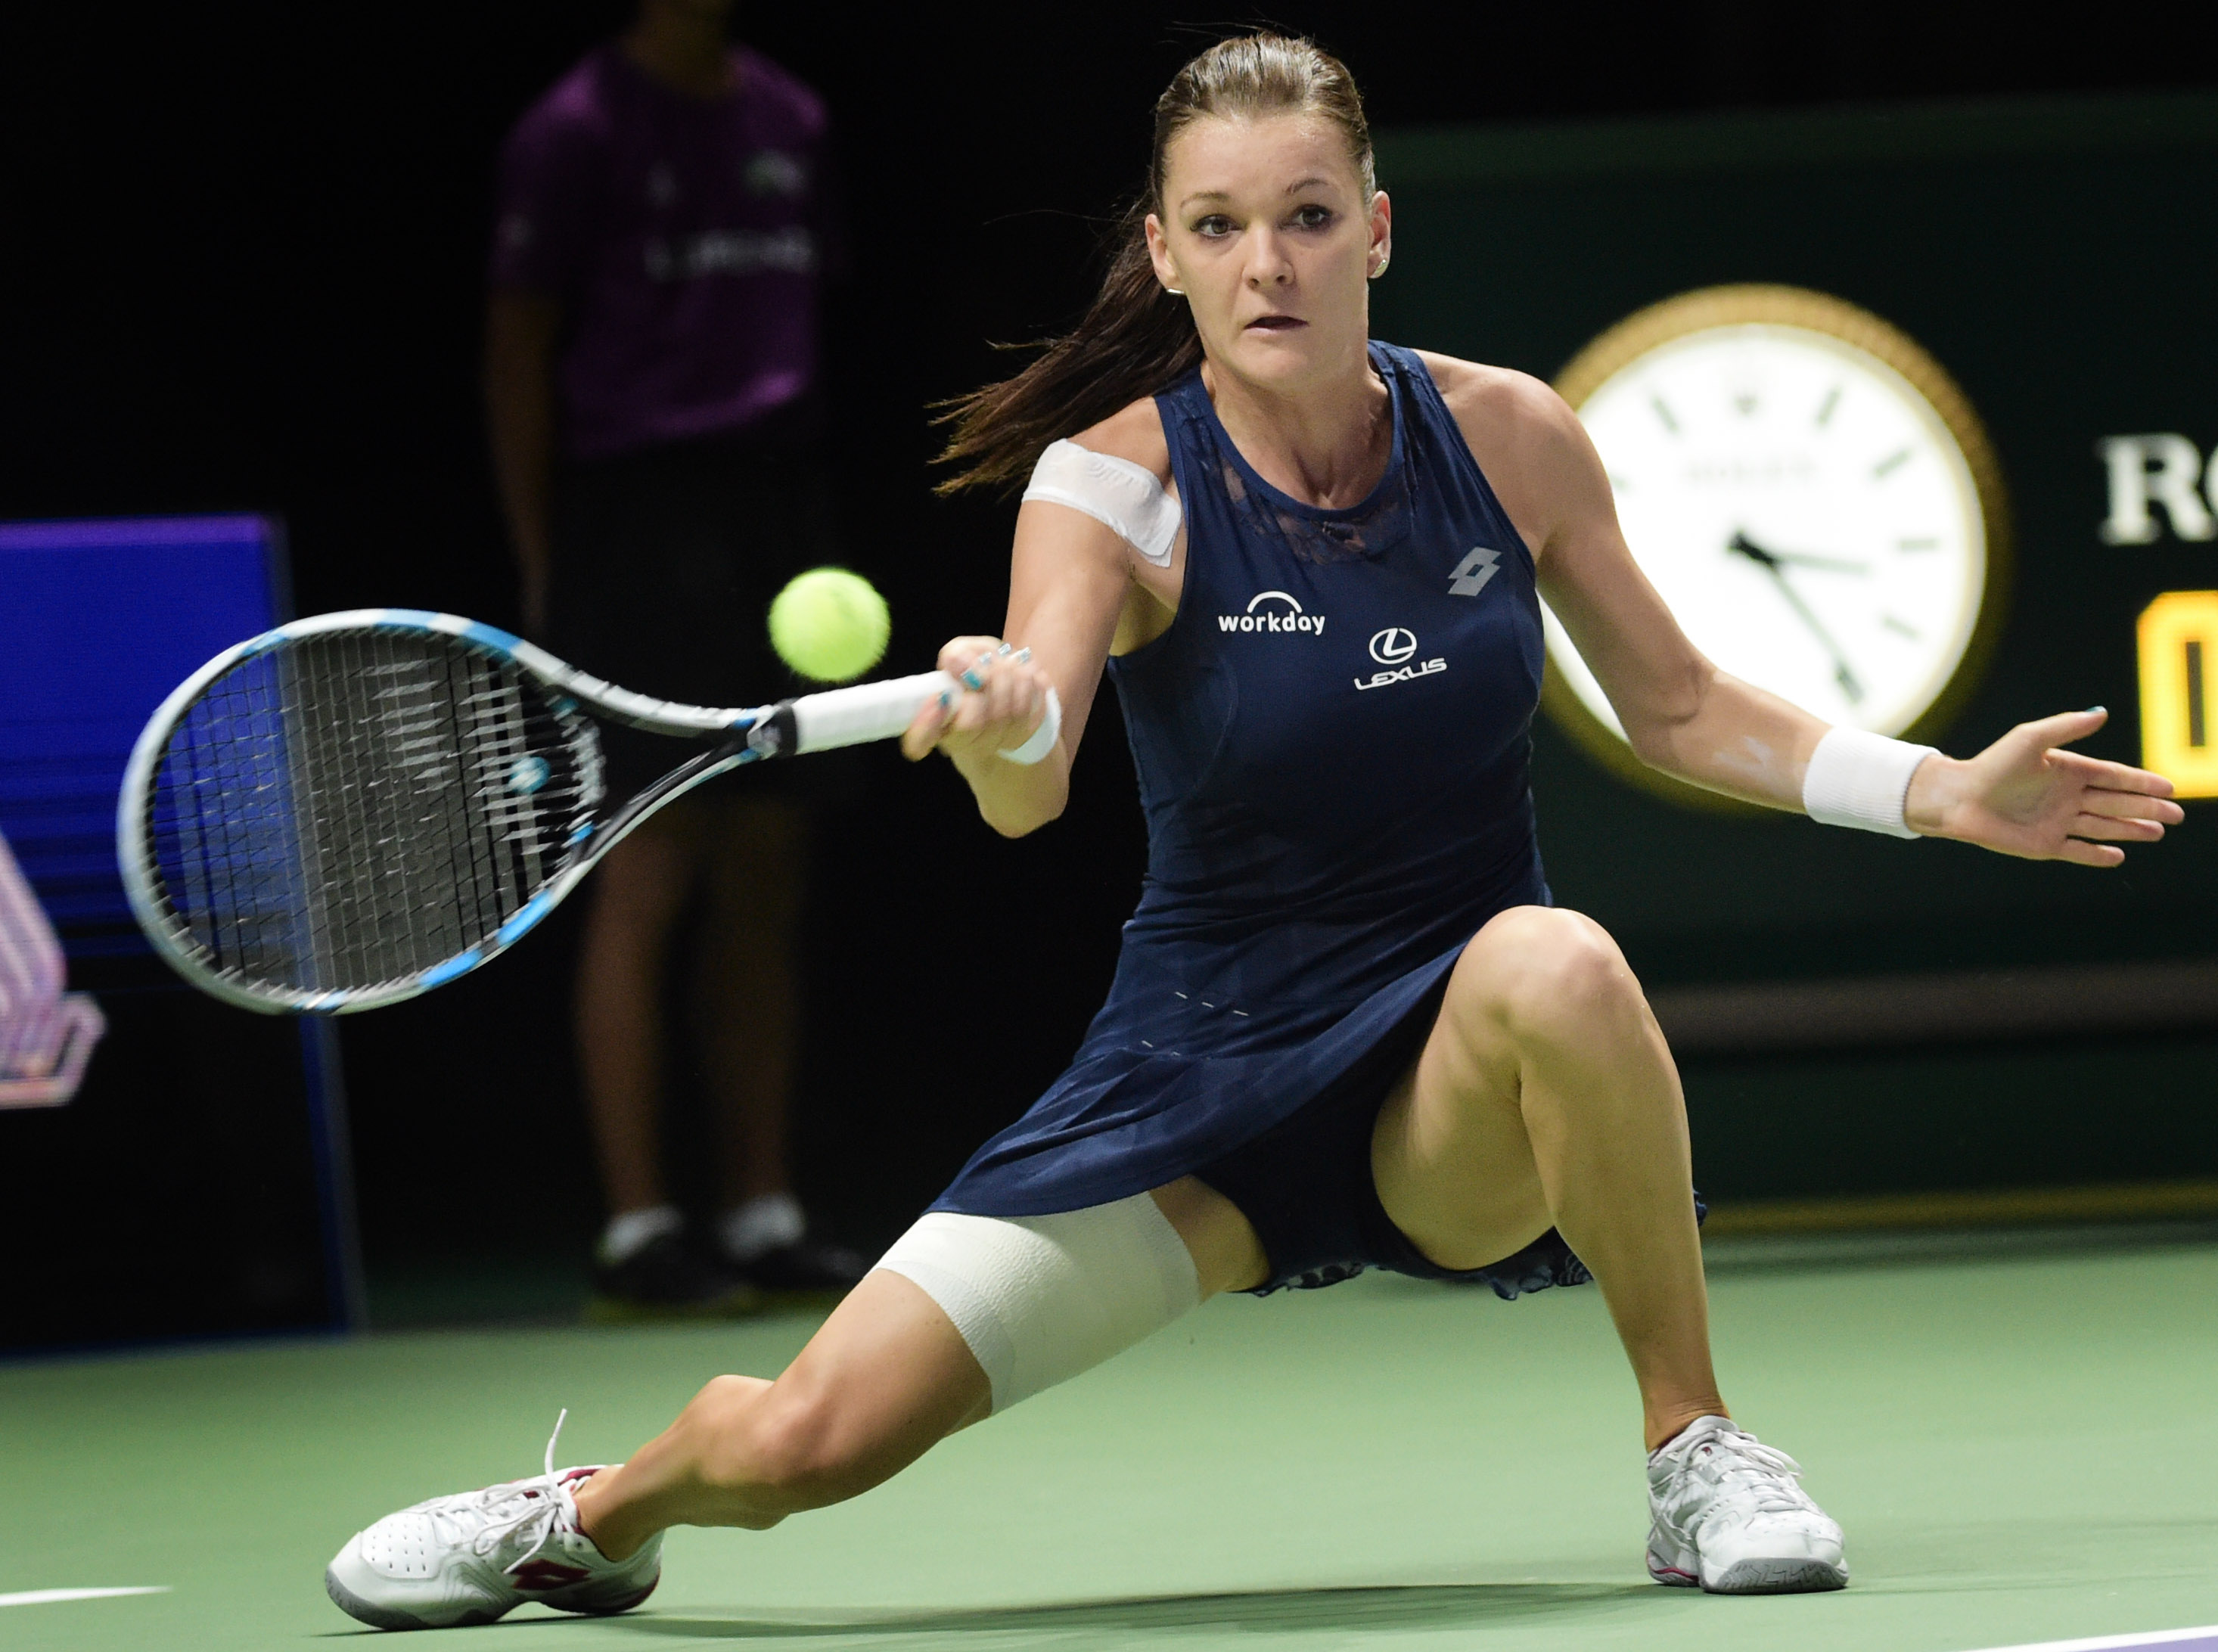 Agnieszka Radwanska of Poland makes a forehand return against Garbine Muguruza of Spain during the singles semifinal at the WTA tennis finals in Singapore on Saturday, Oct. 31, 2015.  (AP Photo/Joseph Nair)